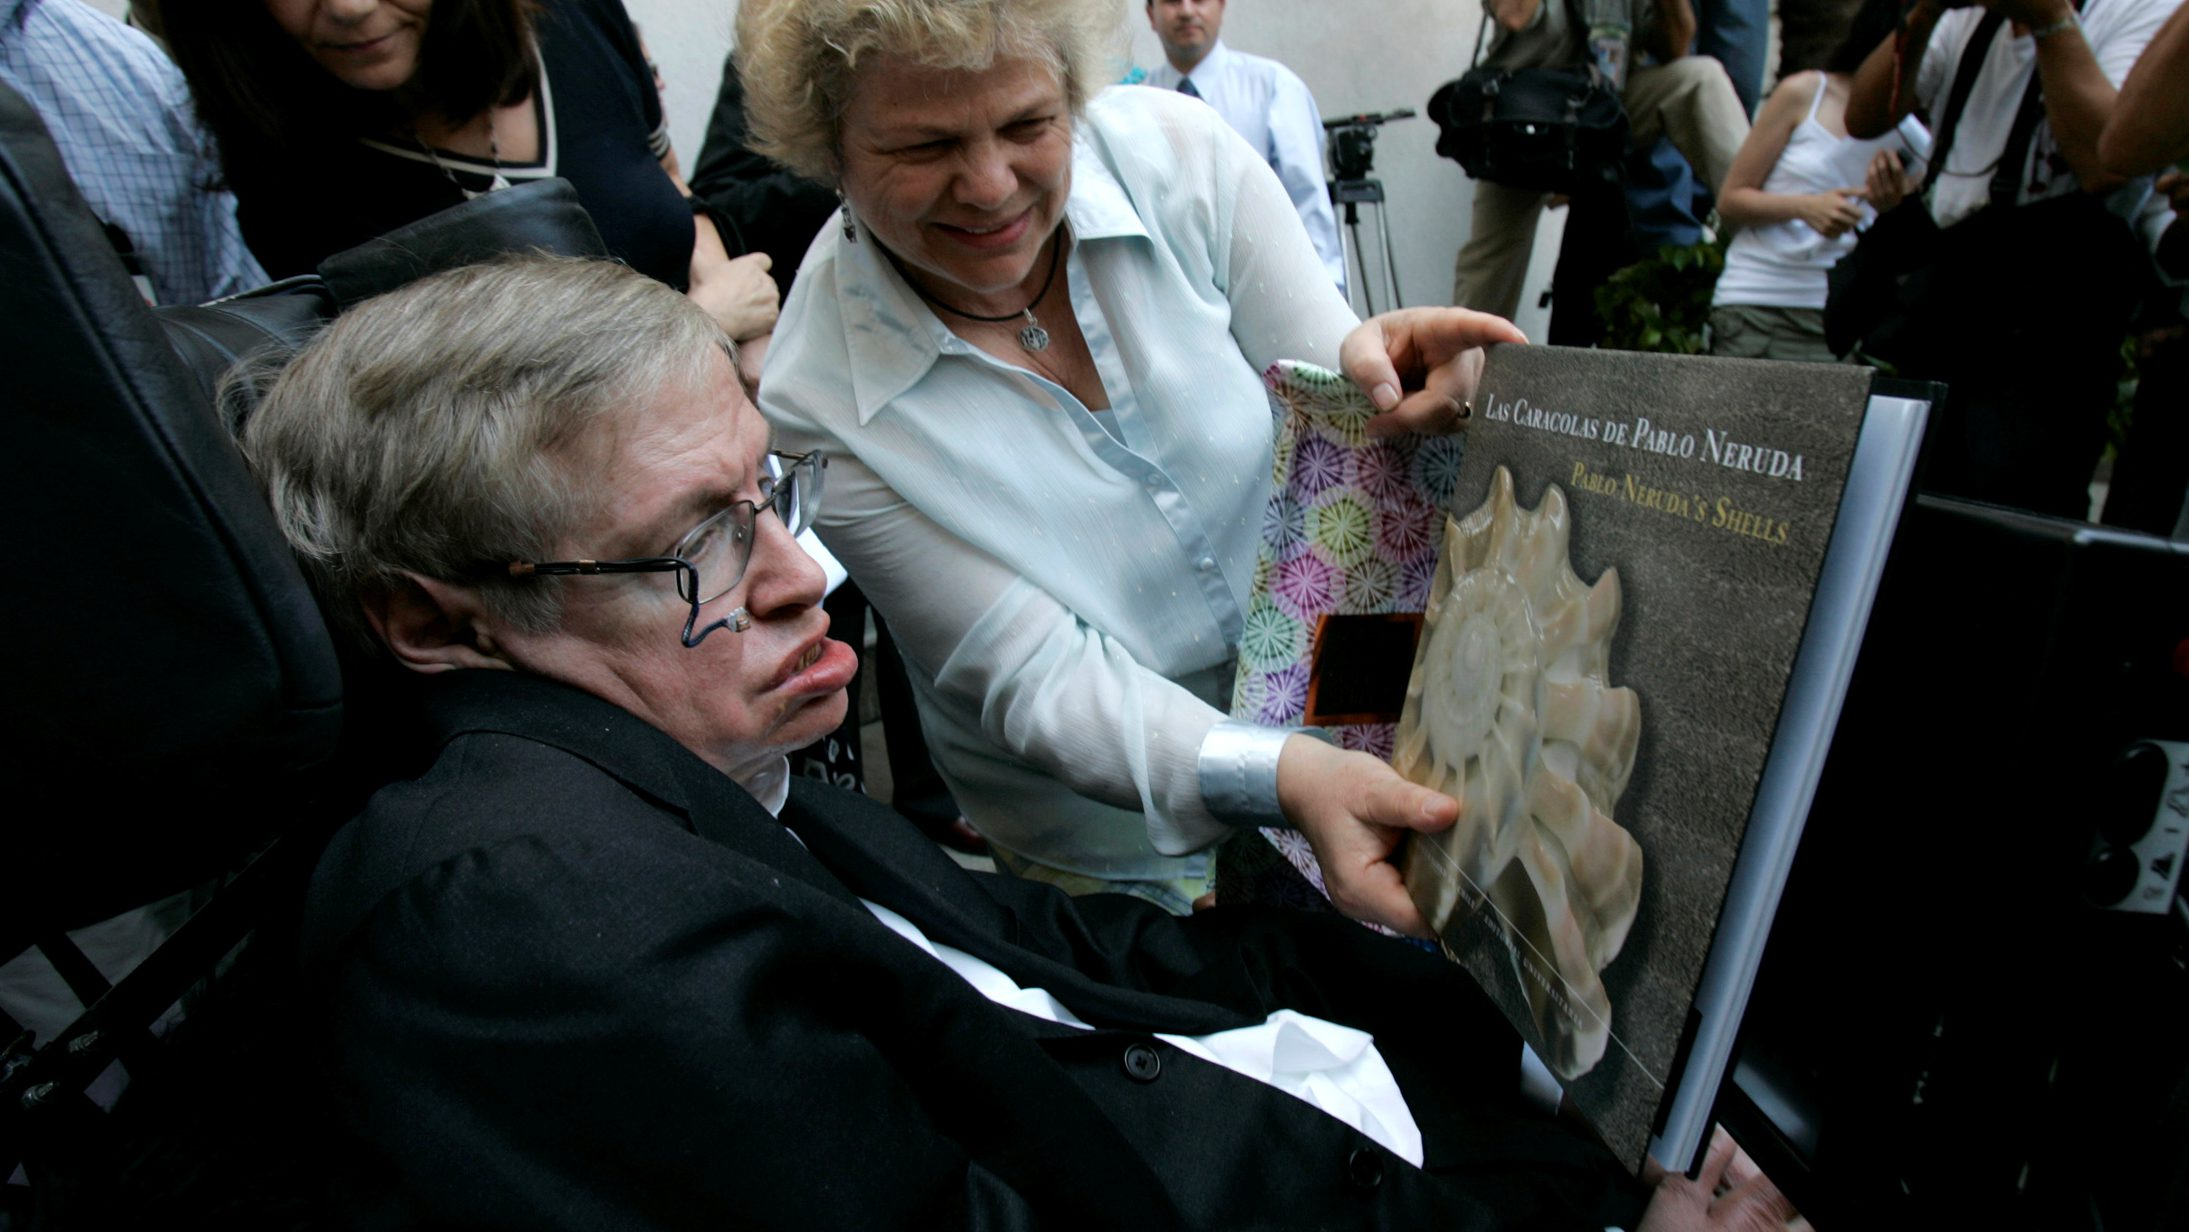 FILE PHOTO: British physicist Stephen Hawking looks at a book of Chile's Nobel Laureate Pablo Neruda after a meeting with Chile's President Michelle Bachelet (unseen) at the Presidential Palace in Santiago January 17, 2008.  REUTERS/Victor Ruiz Caballero/File Photo - RC199AE233F0